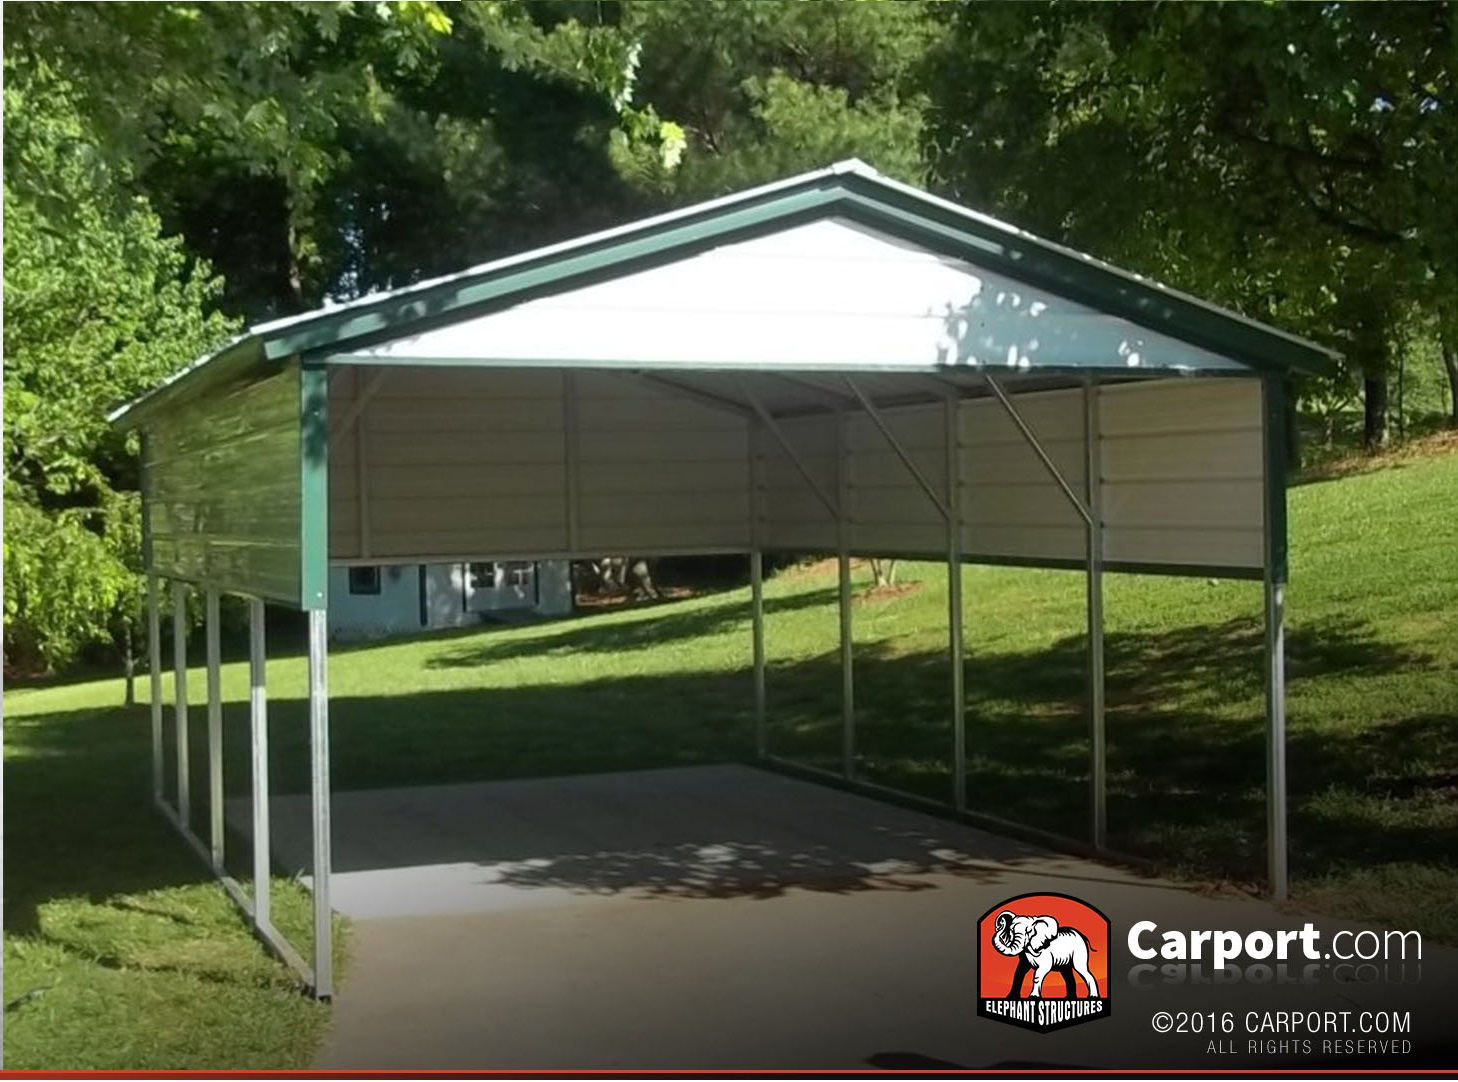 Carport online shop my